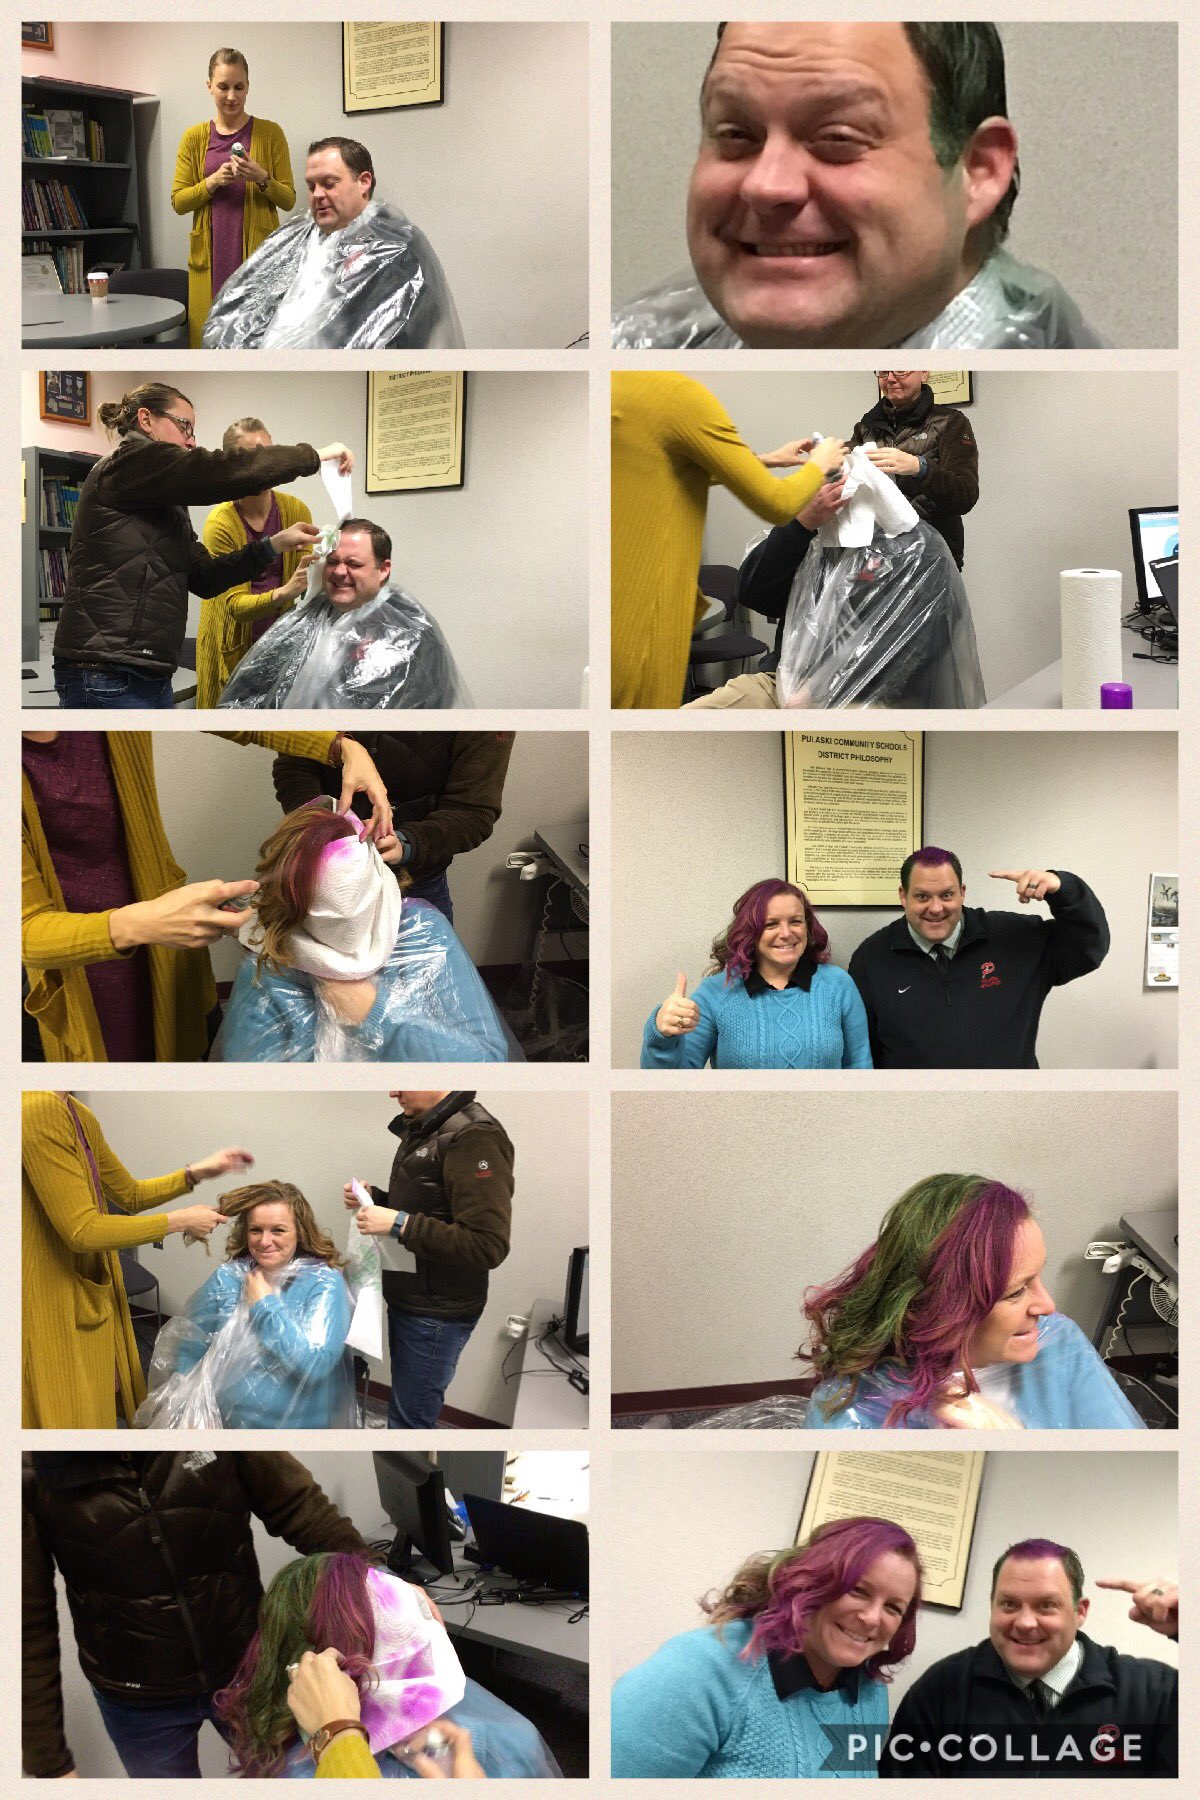 #Raiderstrong- ashes to ashes, dust to dust, act scores were awesome so dyeing our hair is a must. https://t.co/ciWbXfL8Qs